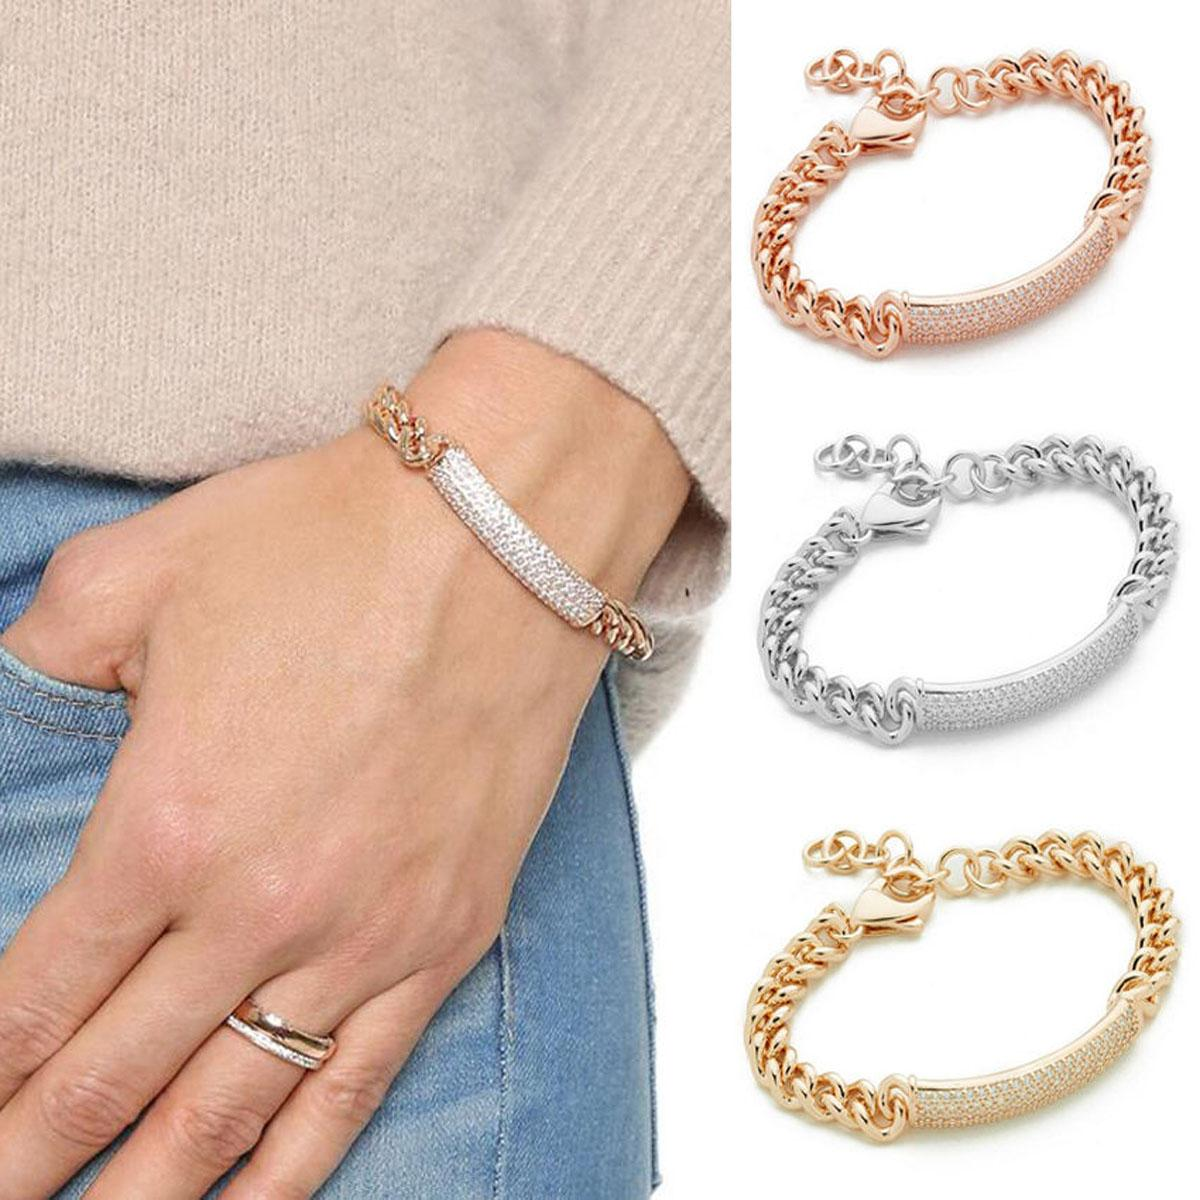 Luxury Crystal Bracelets For Women Silver Rose Gold Bracelets & Bangles Femme Bridal Wedding Jewelry Charm Vintage Bracelet Cuff